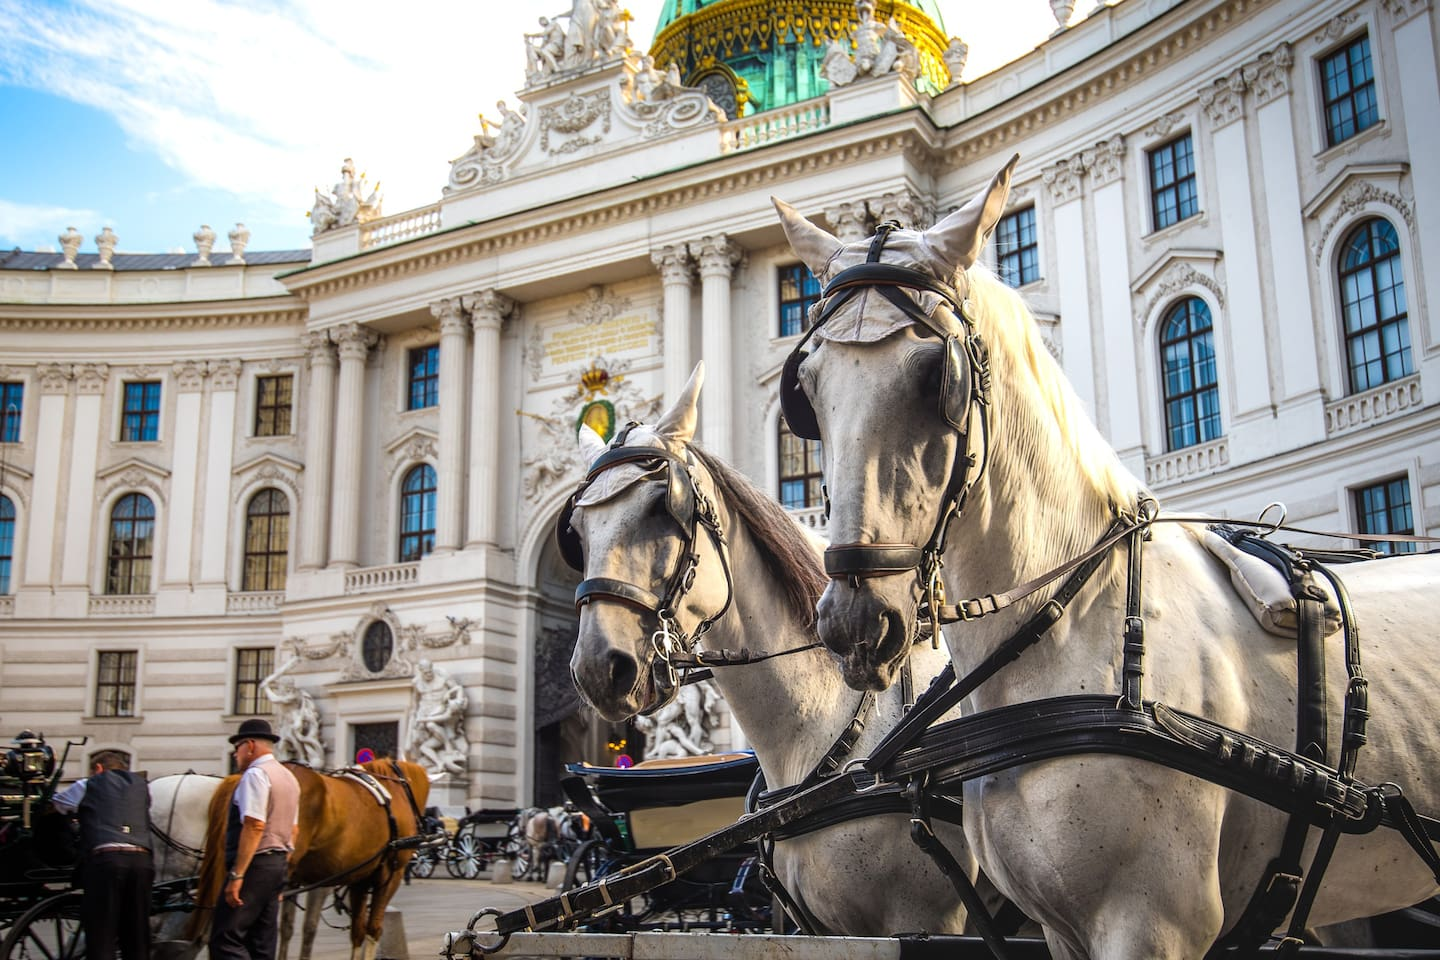 Our flat is just next to the main tour of the famous Fiaker horse carriages